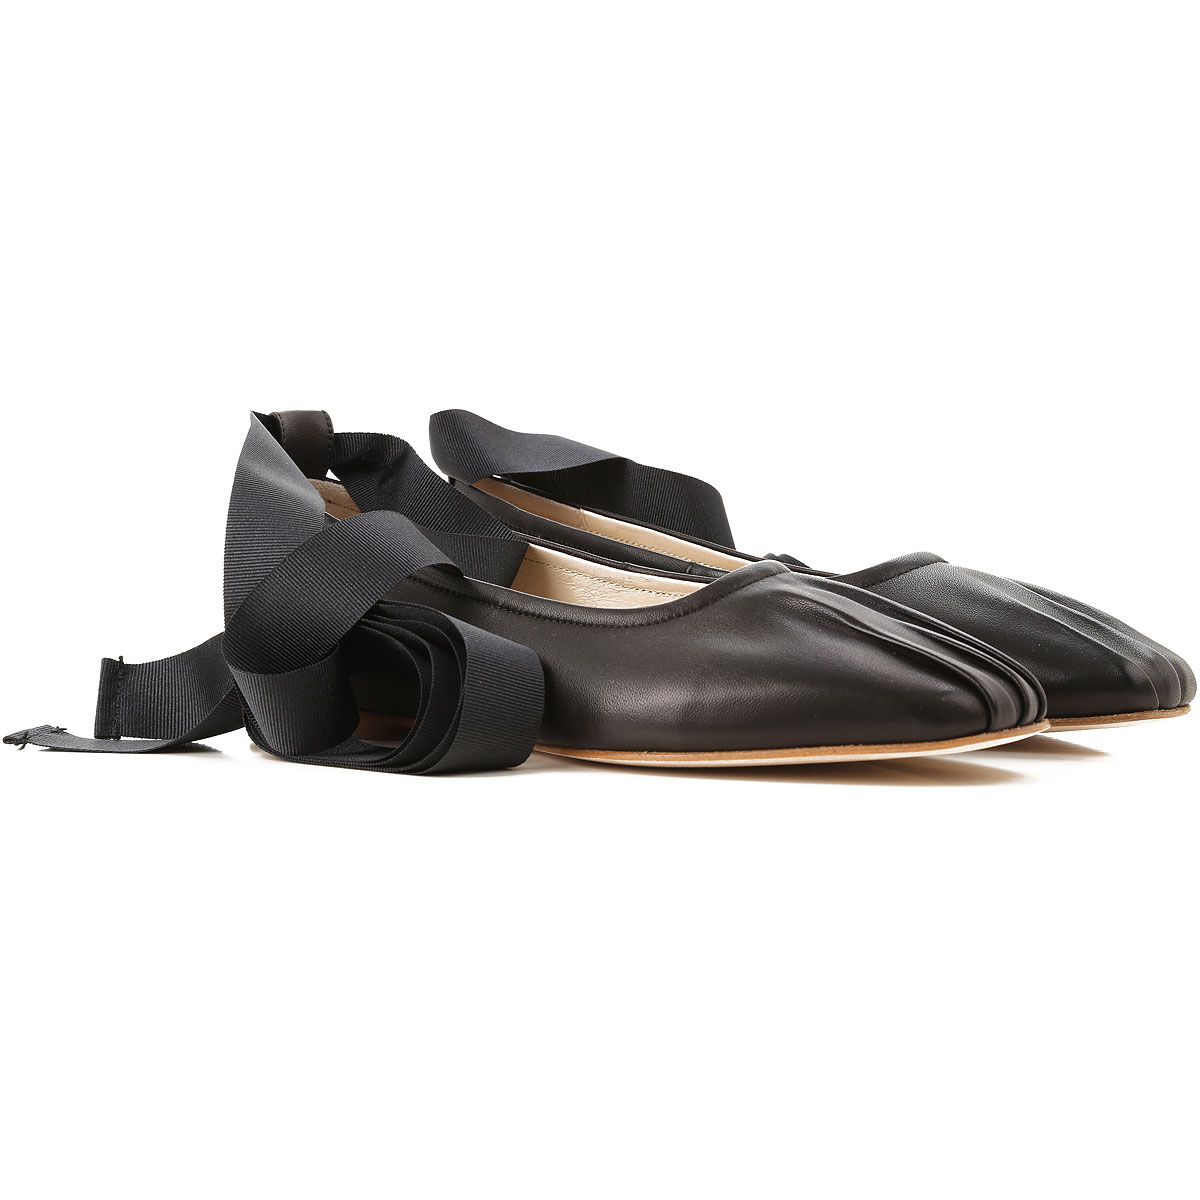 Anna Baiguera Ballet Flats Ballerina Shoes for Women On Sale in Outlet, Black, Calfskin Leather, 2019, 6 7